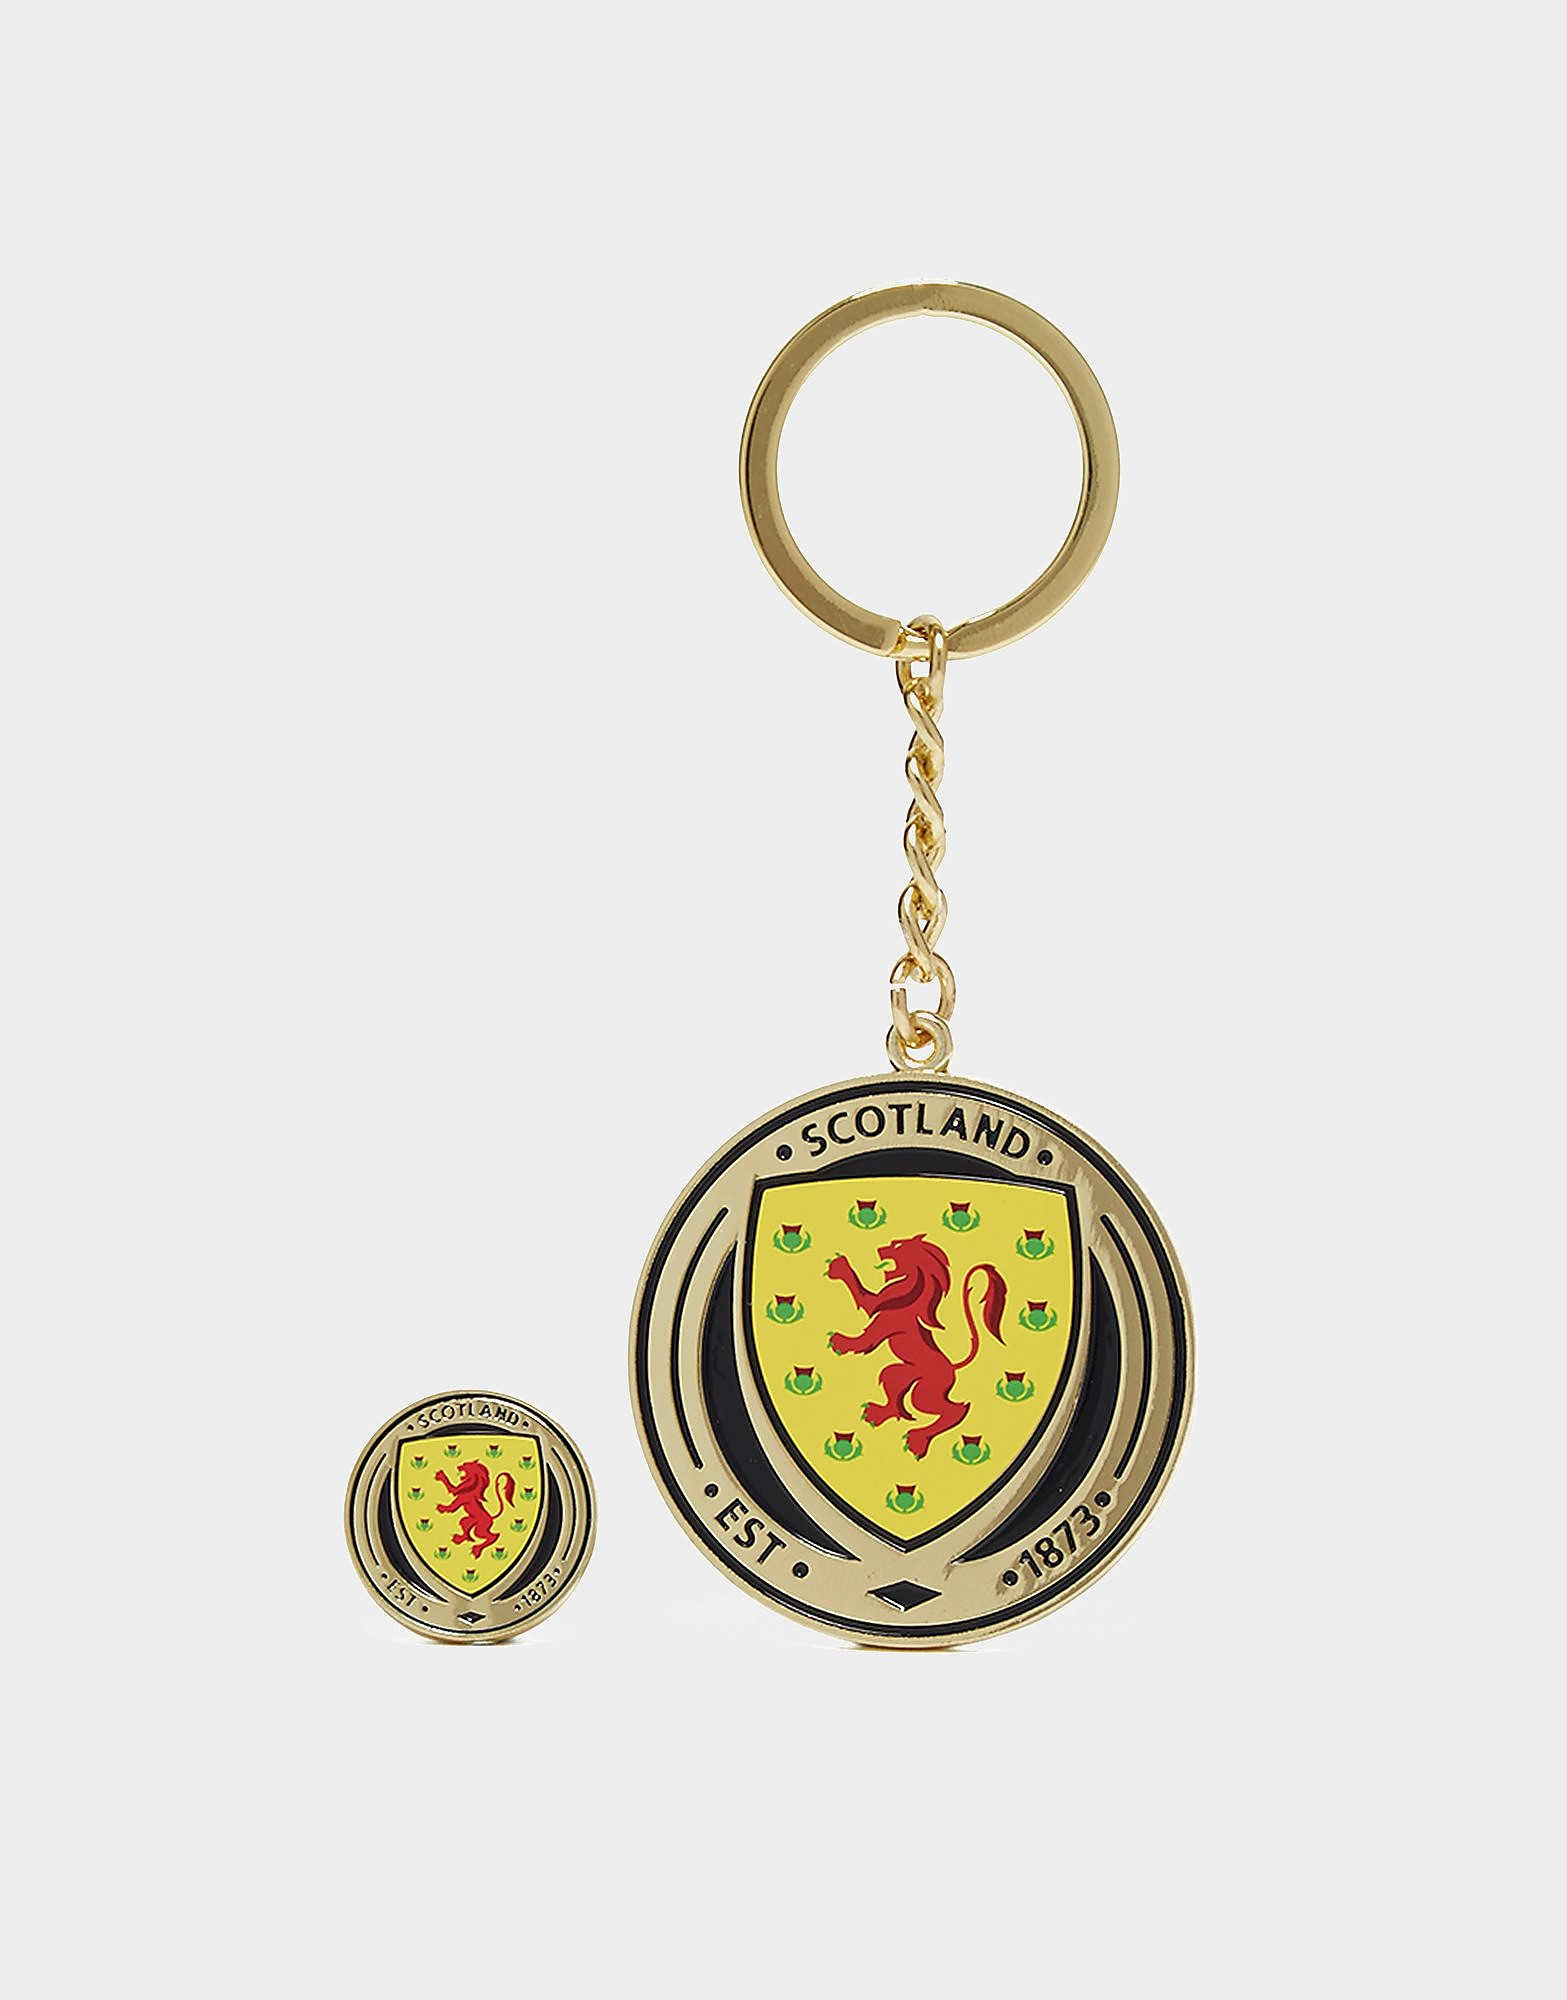 Official Team Llavero y pin del Scotland FA